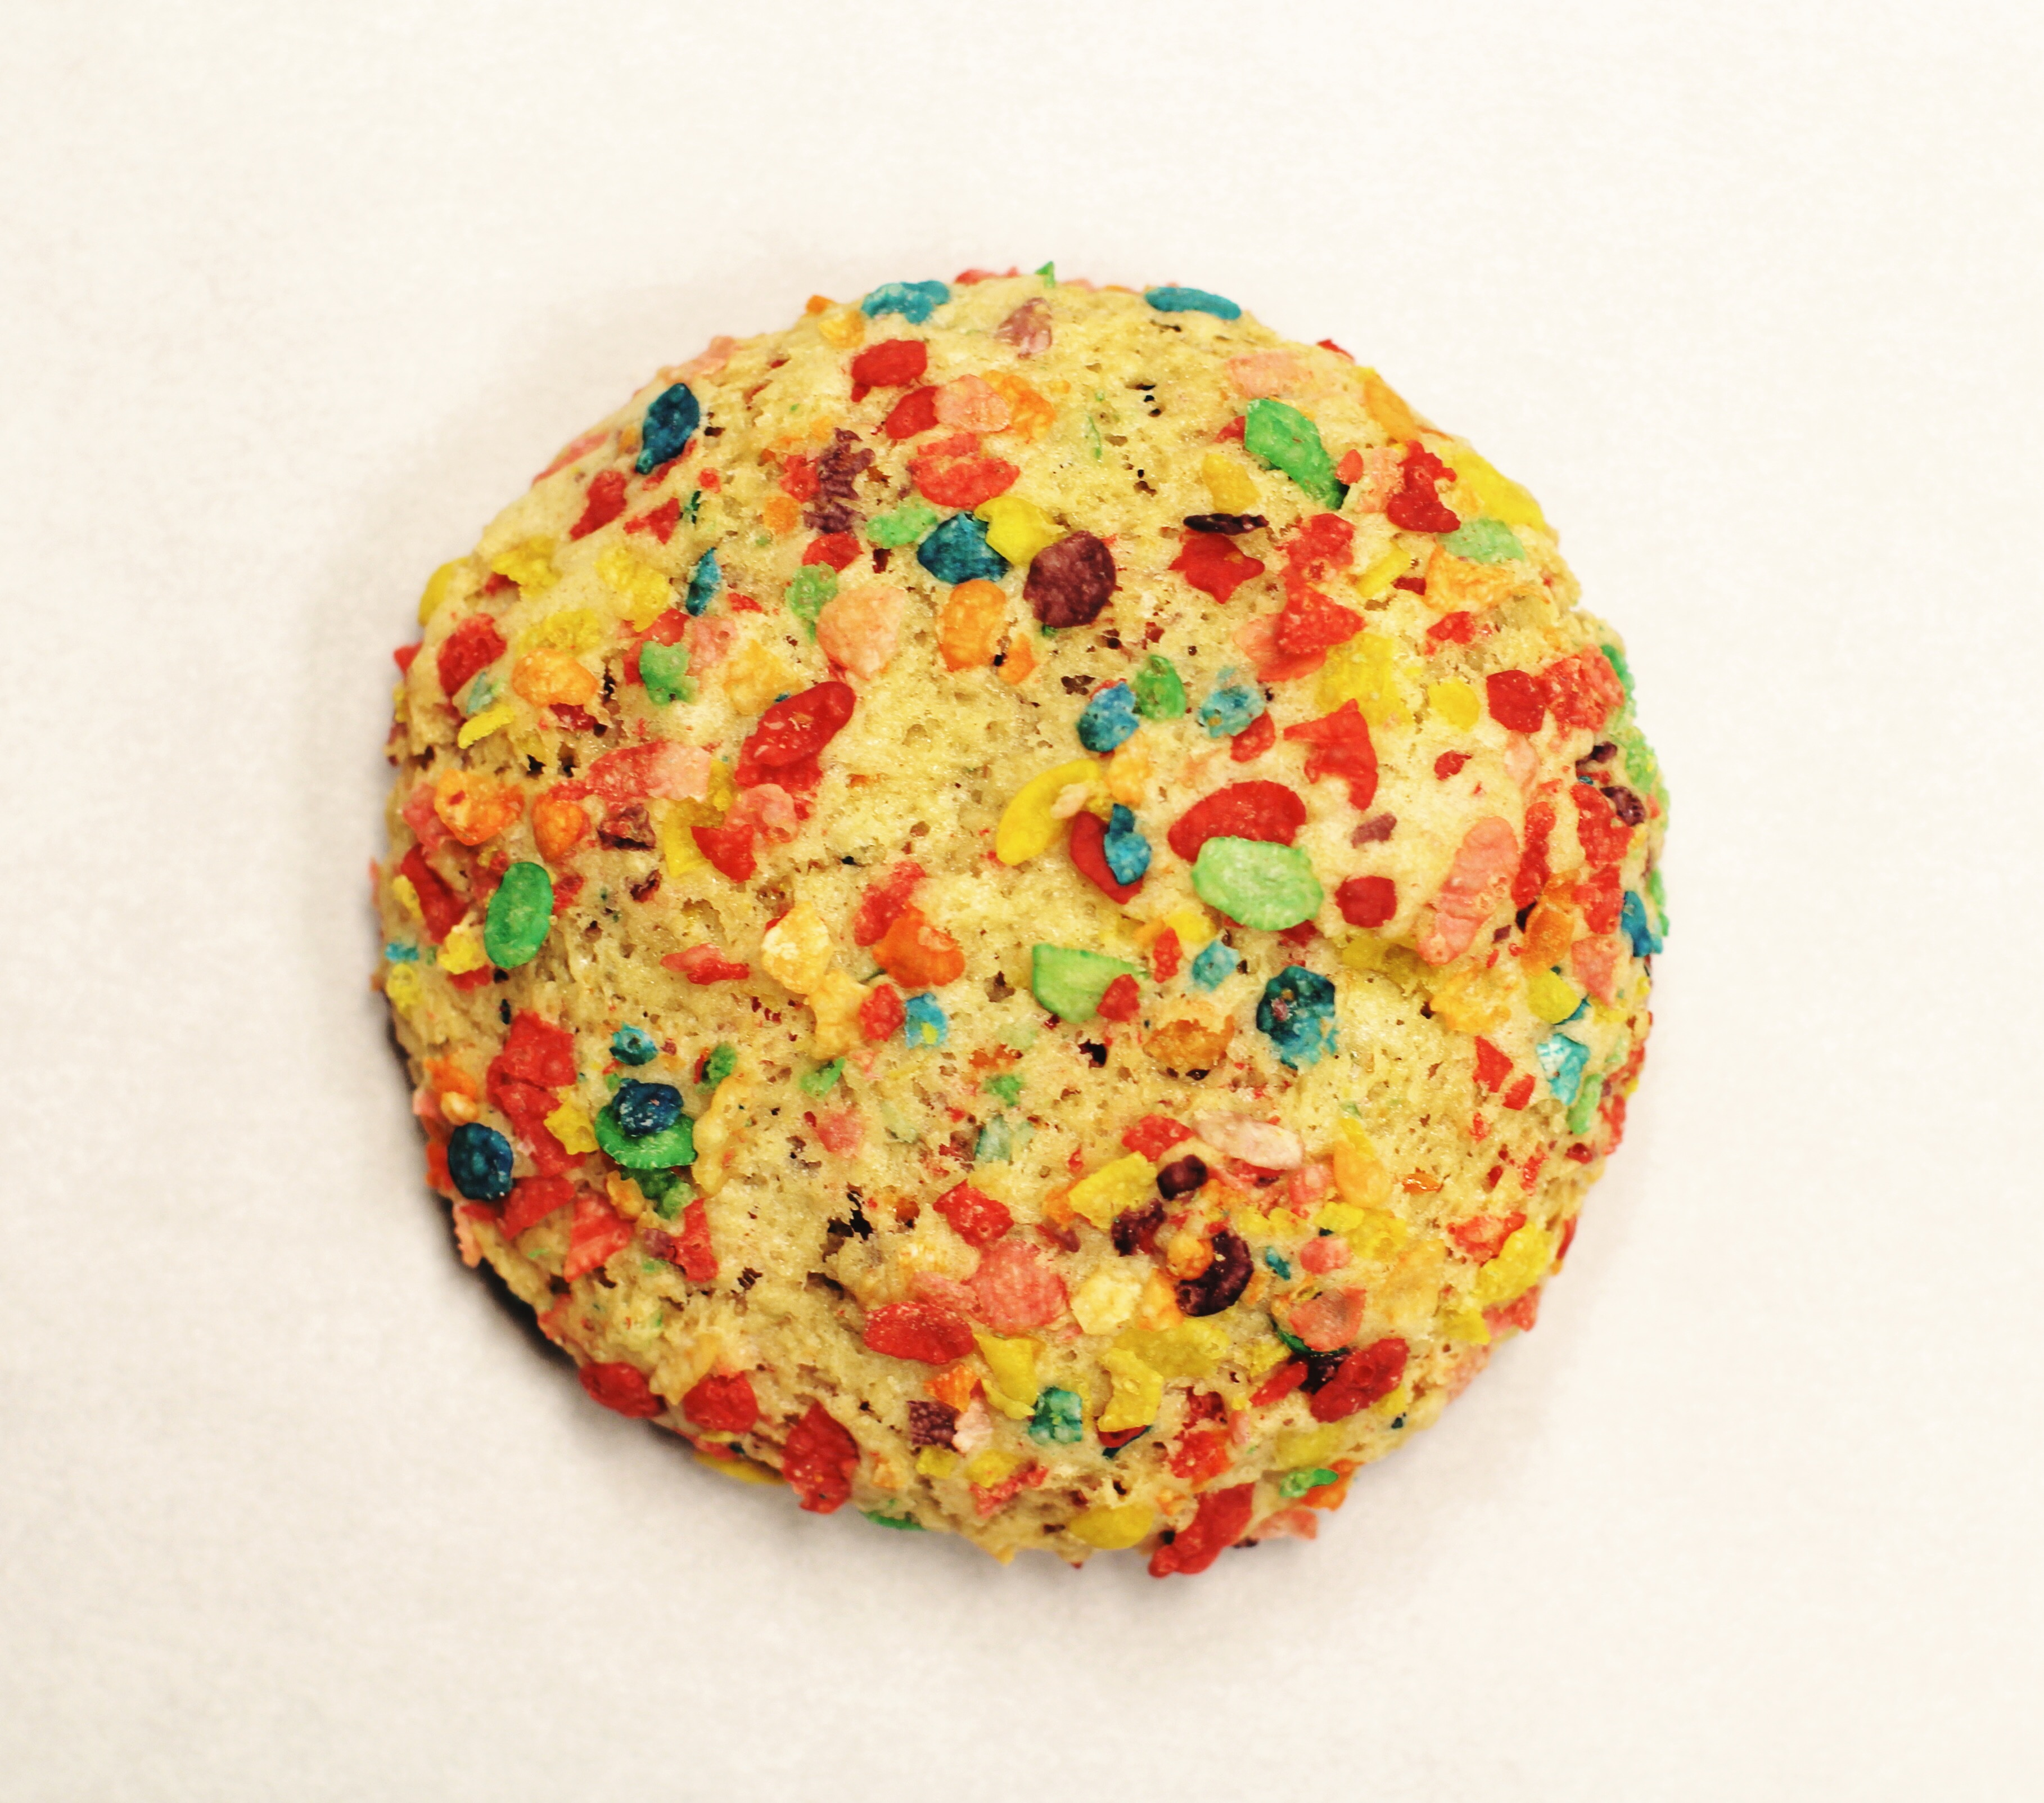 The Fruity Pebble cookie is one of the new offerings at Society Bakery at the Preston Royal shopping center. (submitted photo)